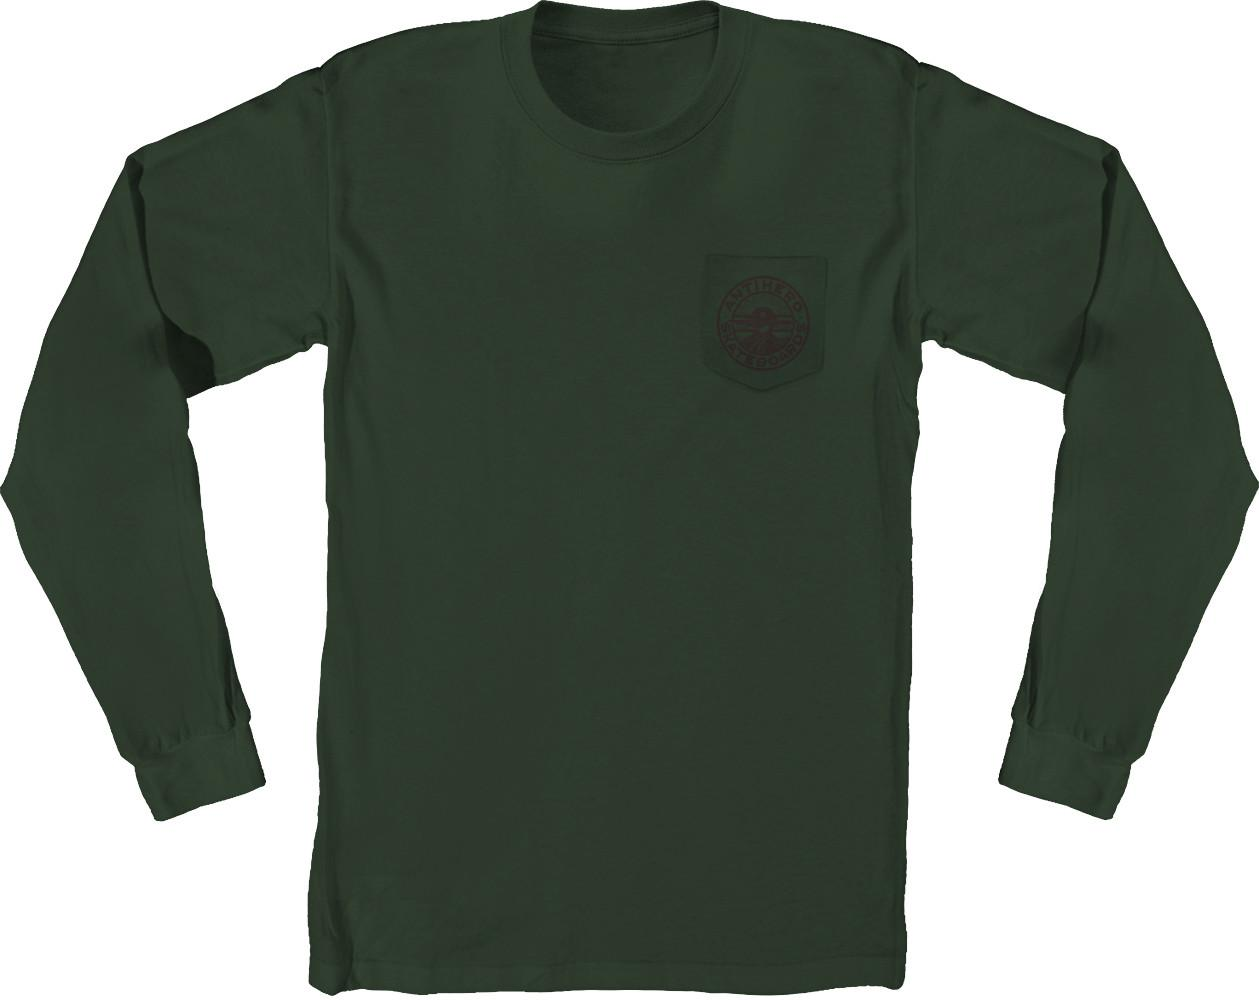 AH LS TEE STAY READY GRN/BRN L - Click to enlarge